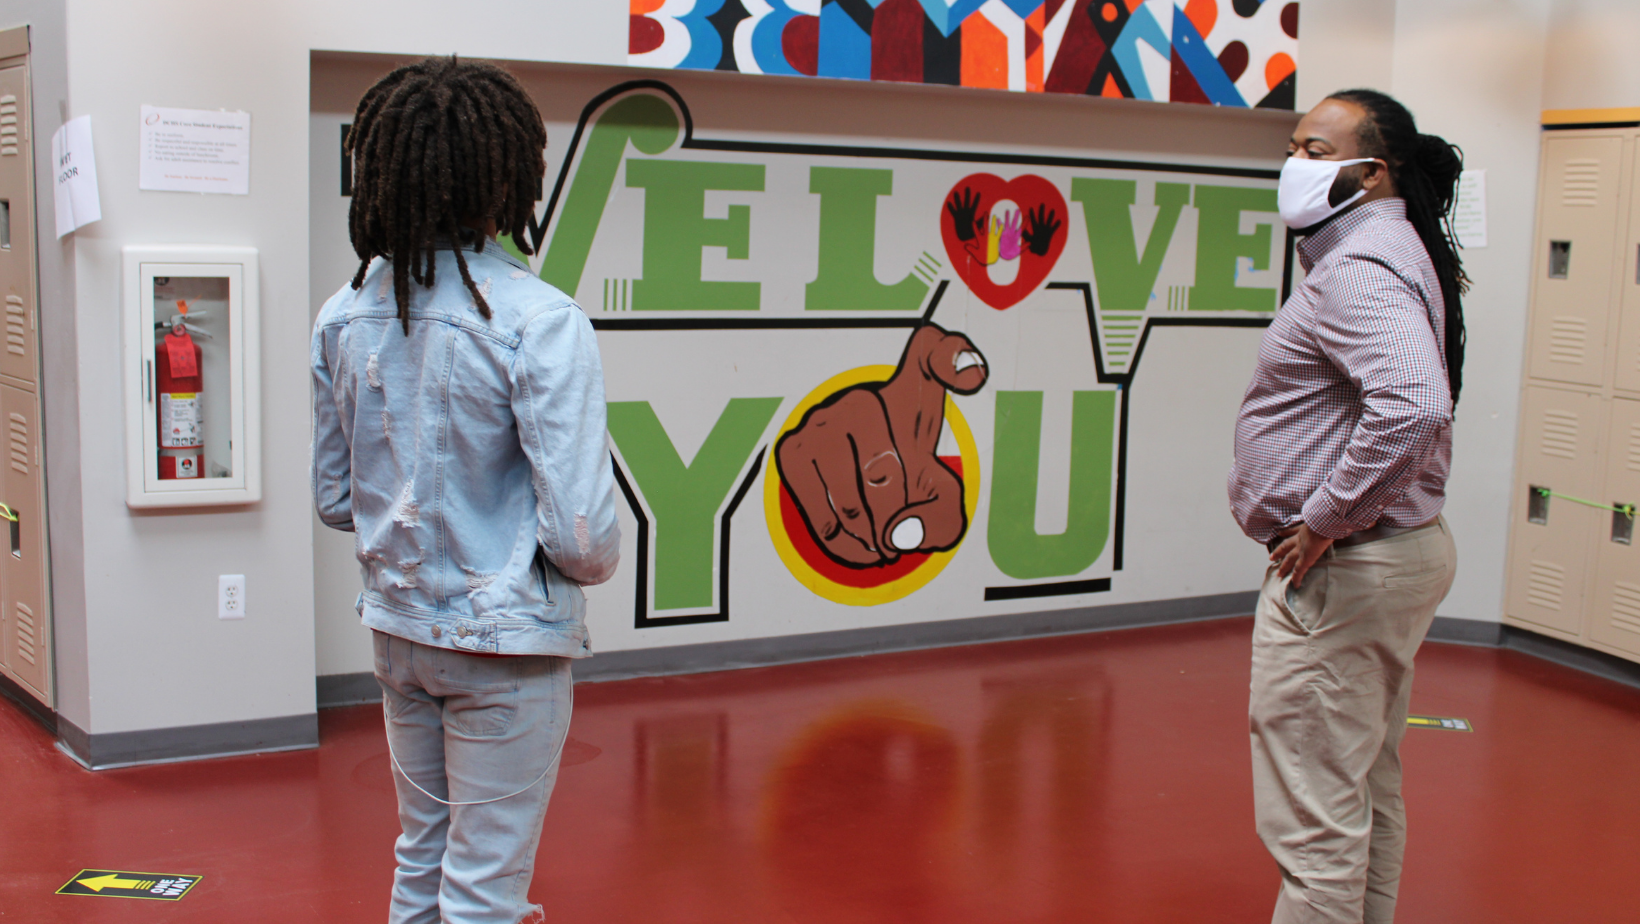 An African American student stands with his back to the camera looking toward a male African American educator. They both face a mural that reads